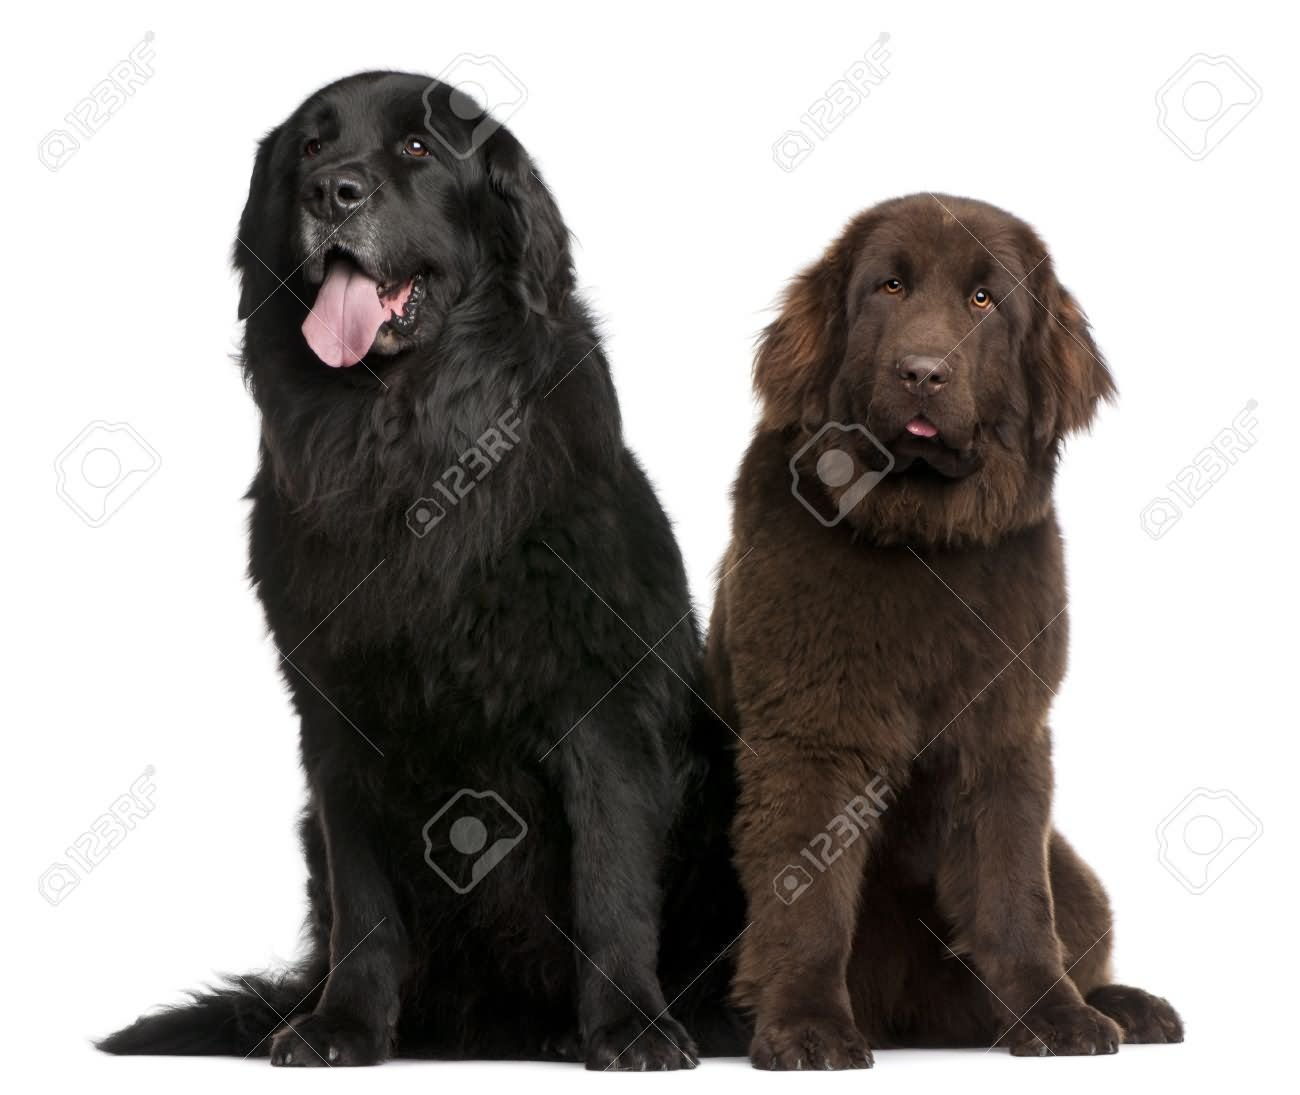 35 very beautiful newfoundland dog pictures - Black And Brown Two Newfoundland Dogs Sitting